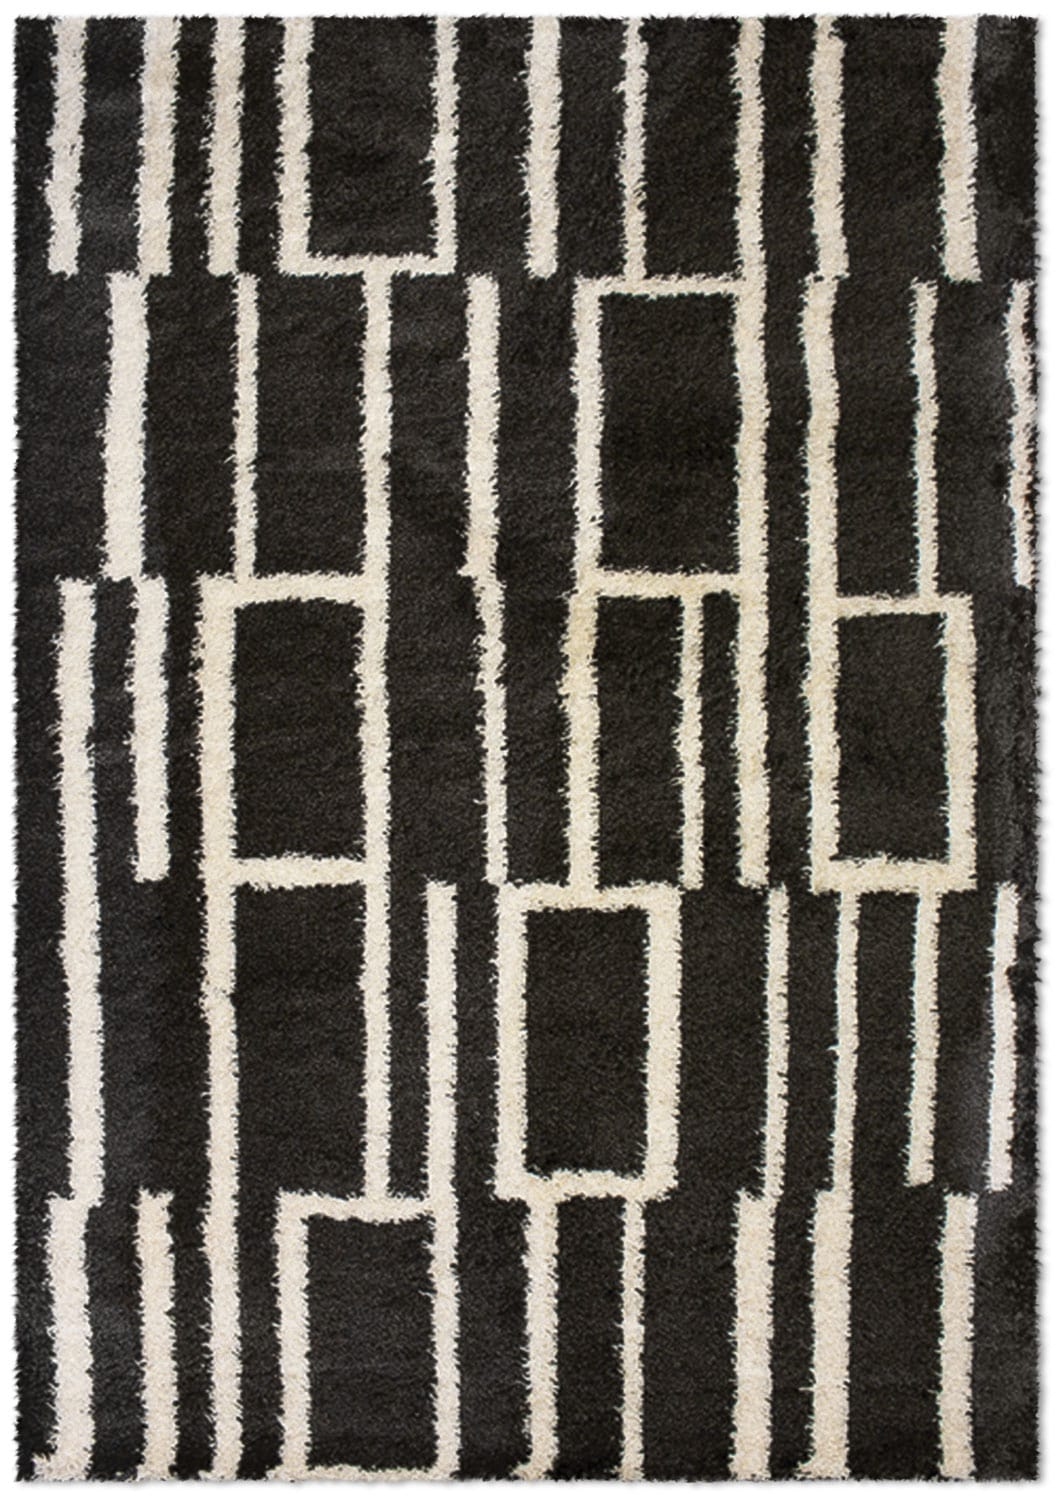 Shaggy Black Geometric Area Rug – 8' x 10'